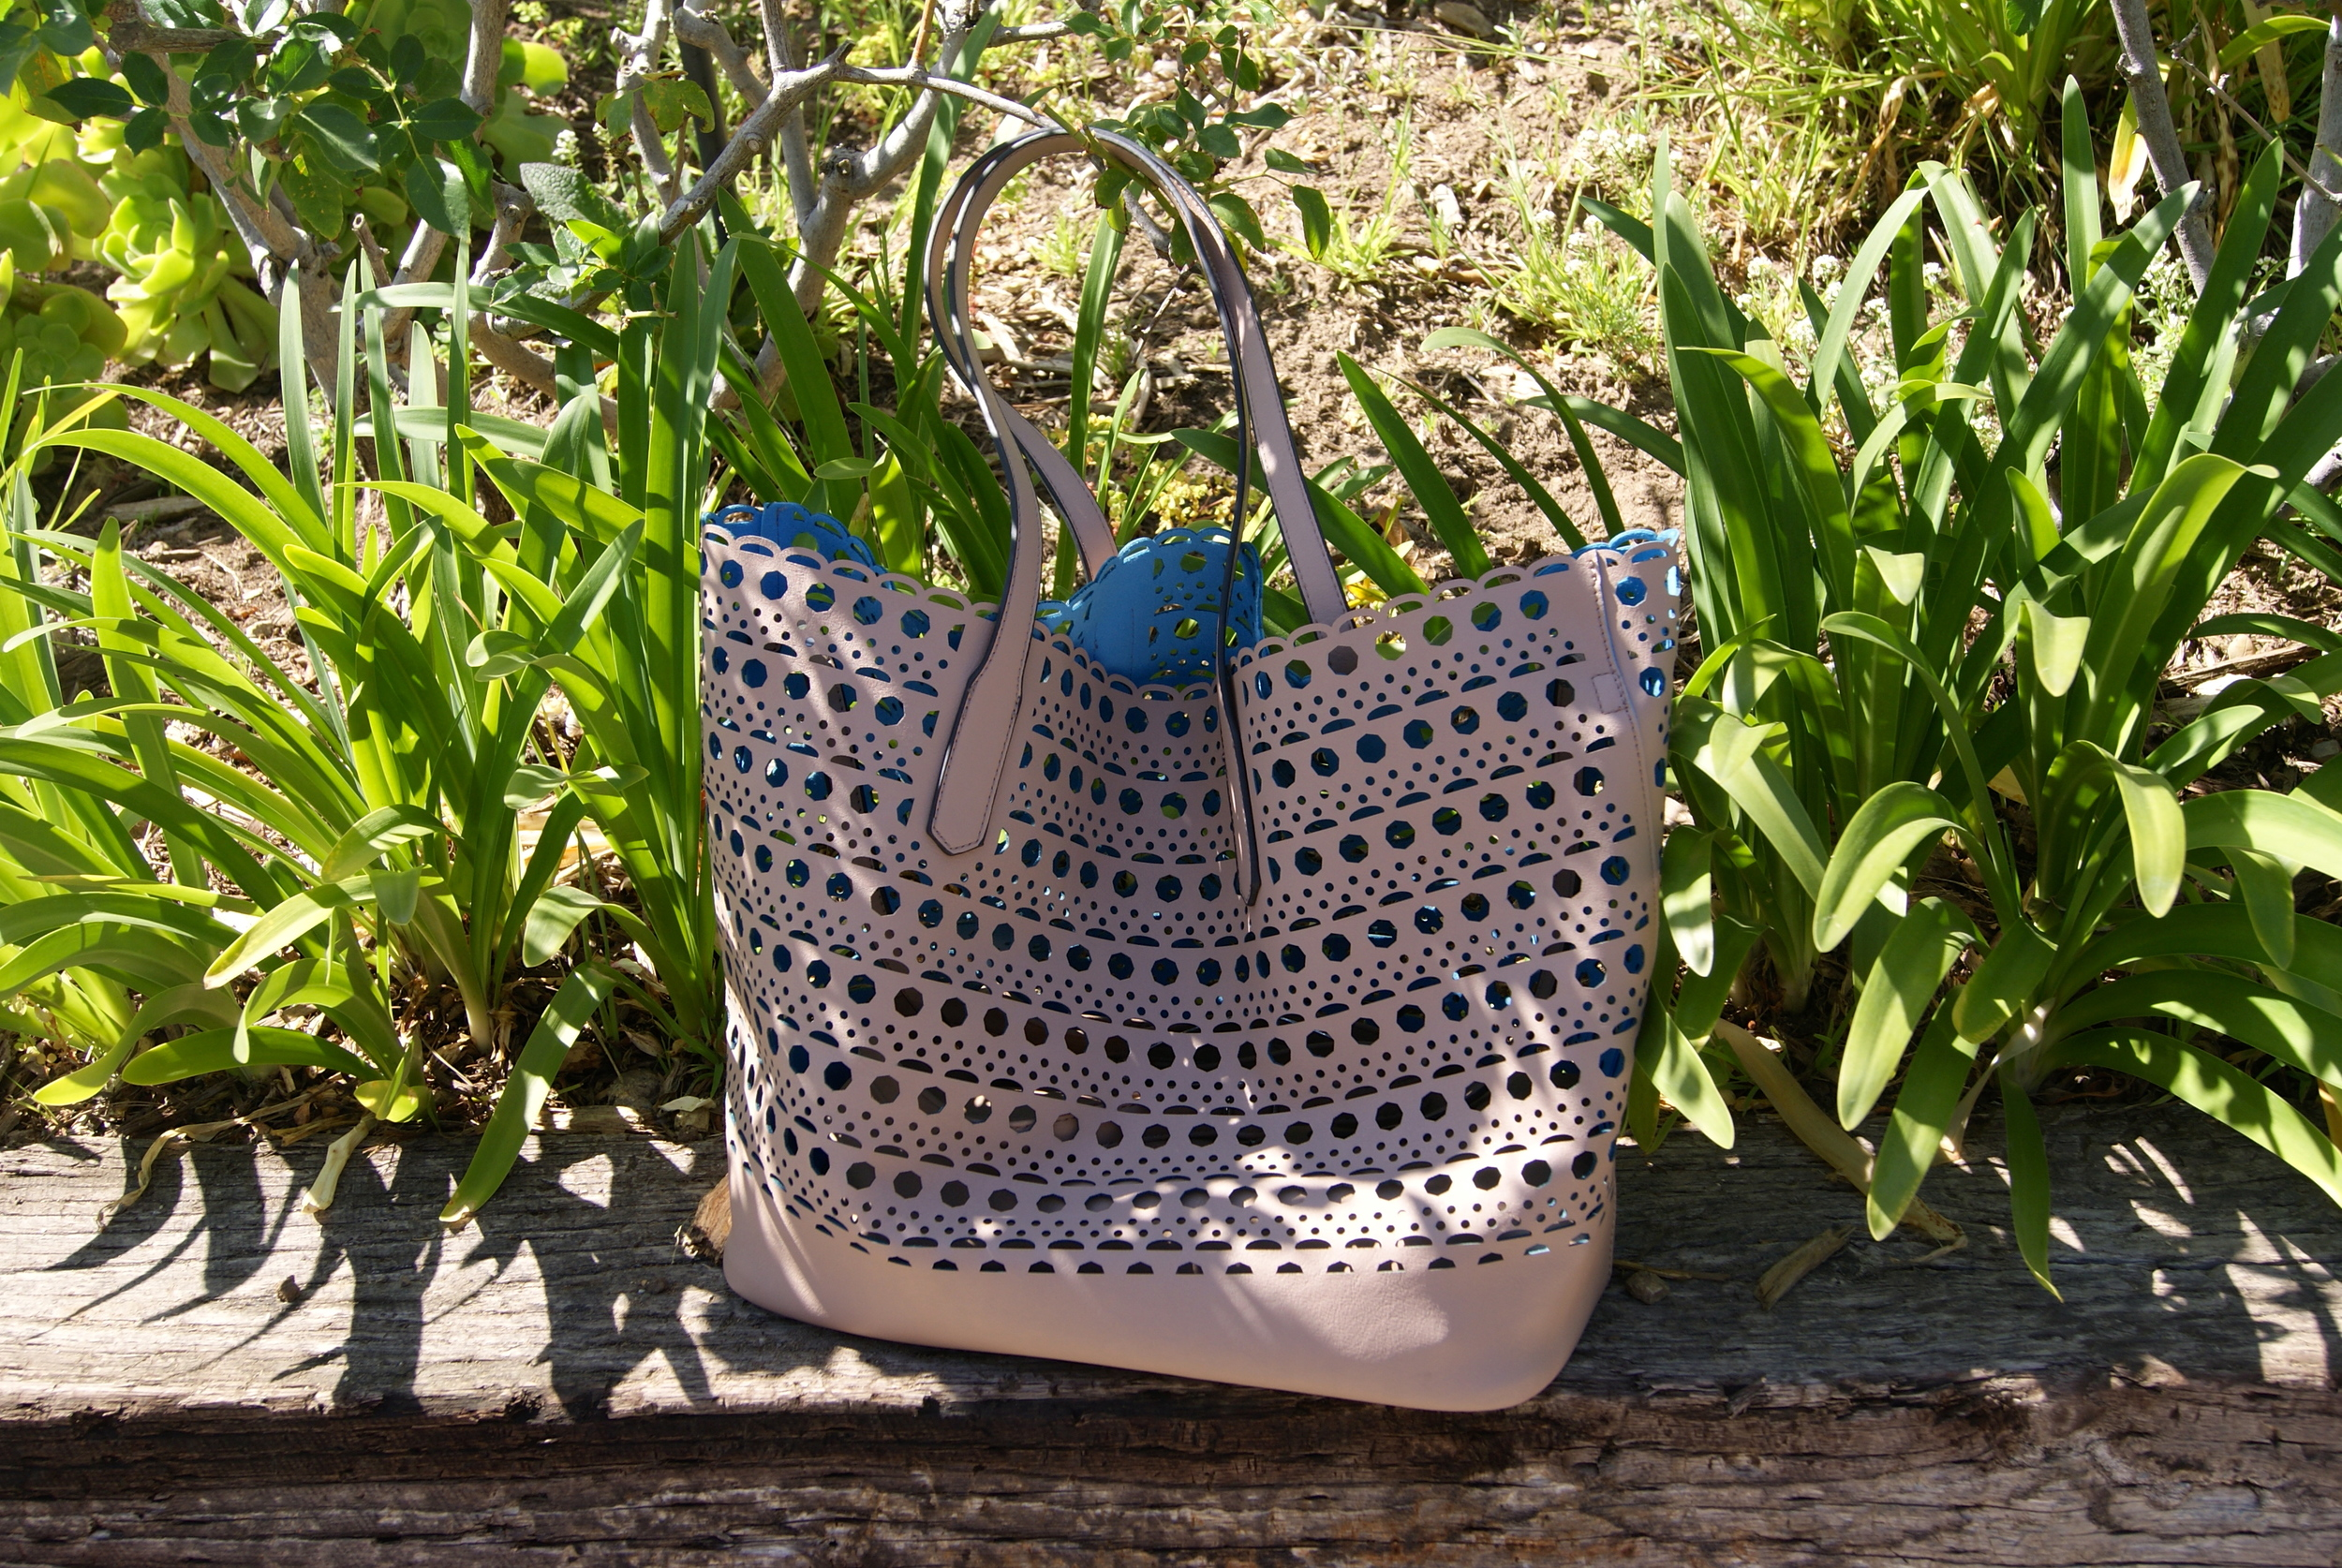 Perforated leather bags, $130. To order, contact Esther Feder, essiela@gmail.com , 310-490-5515.